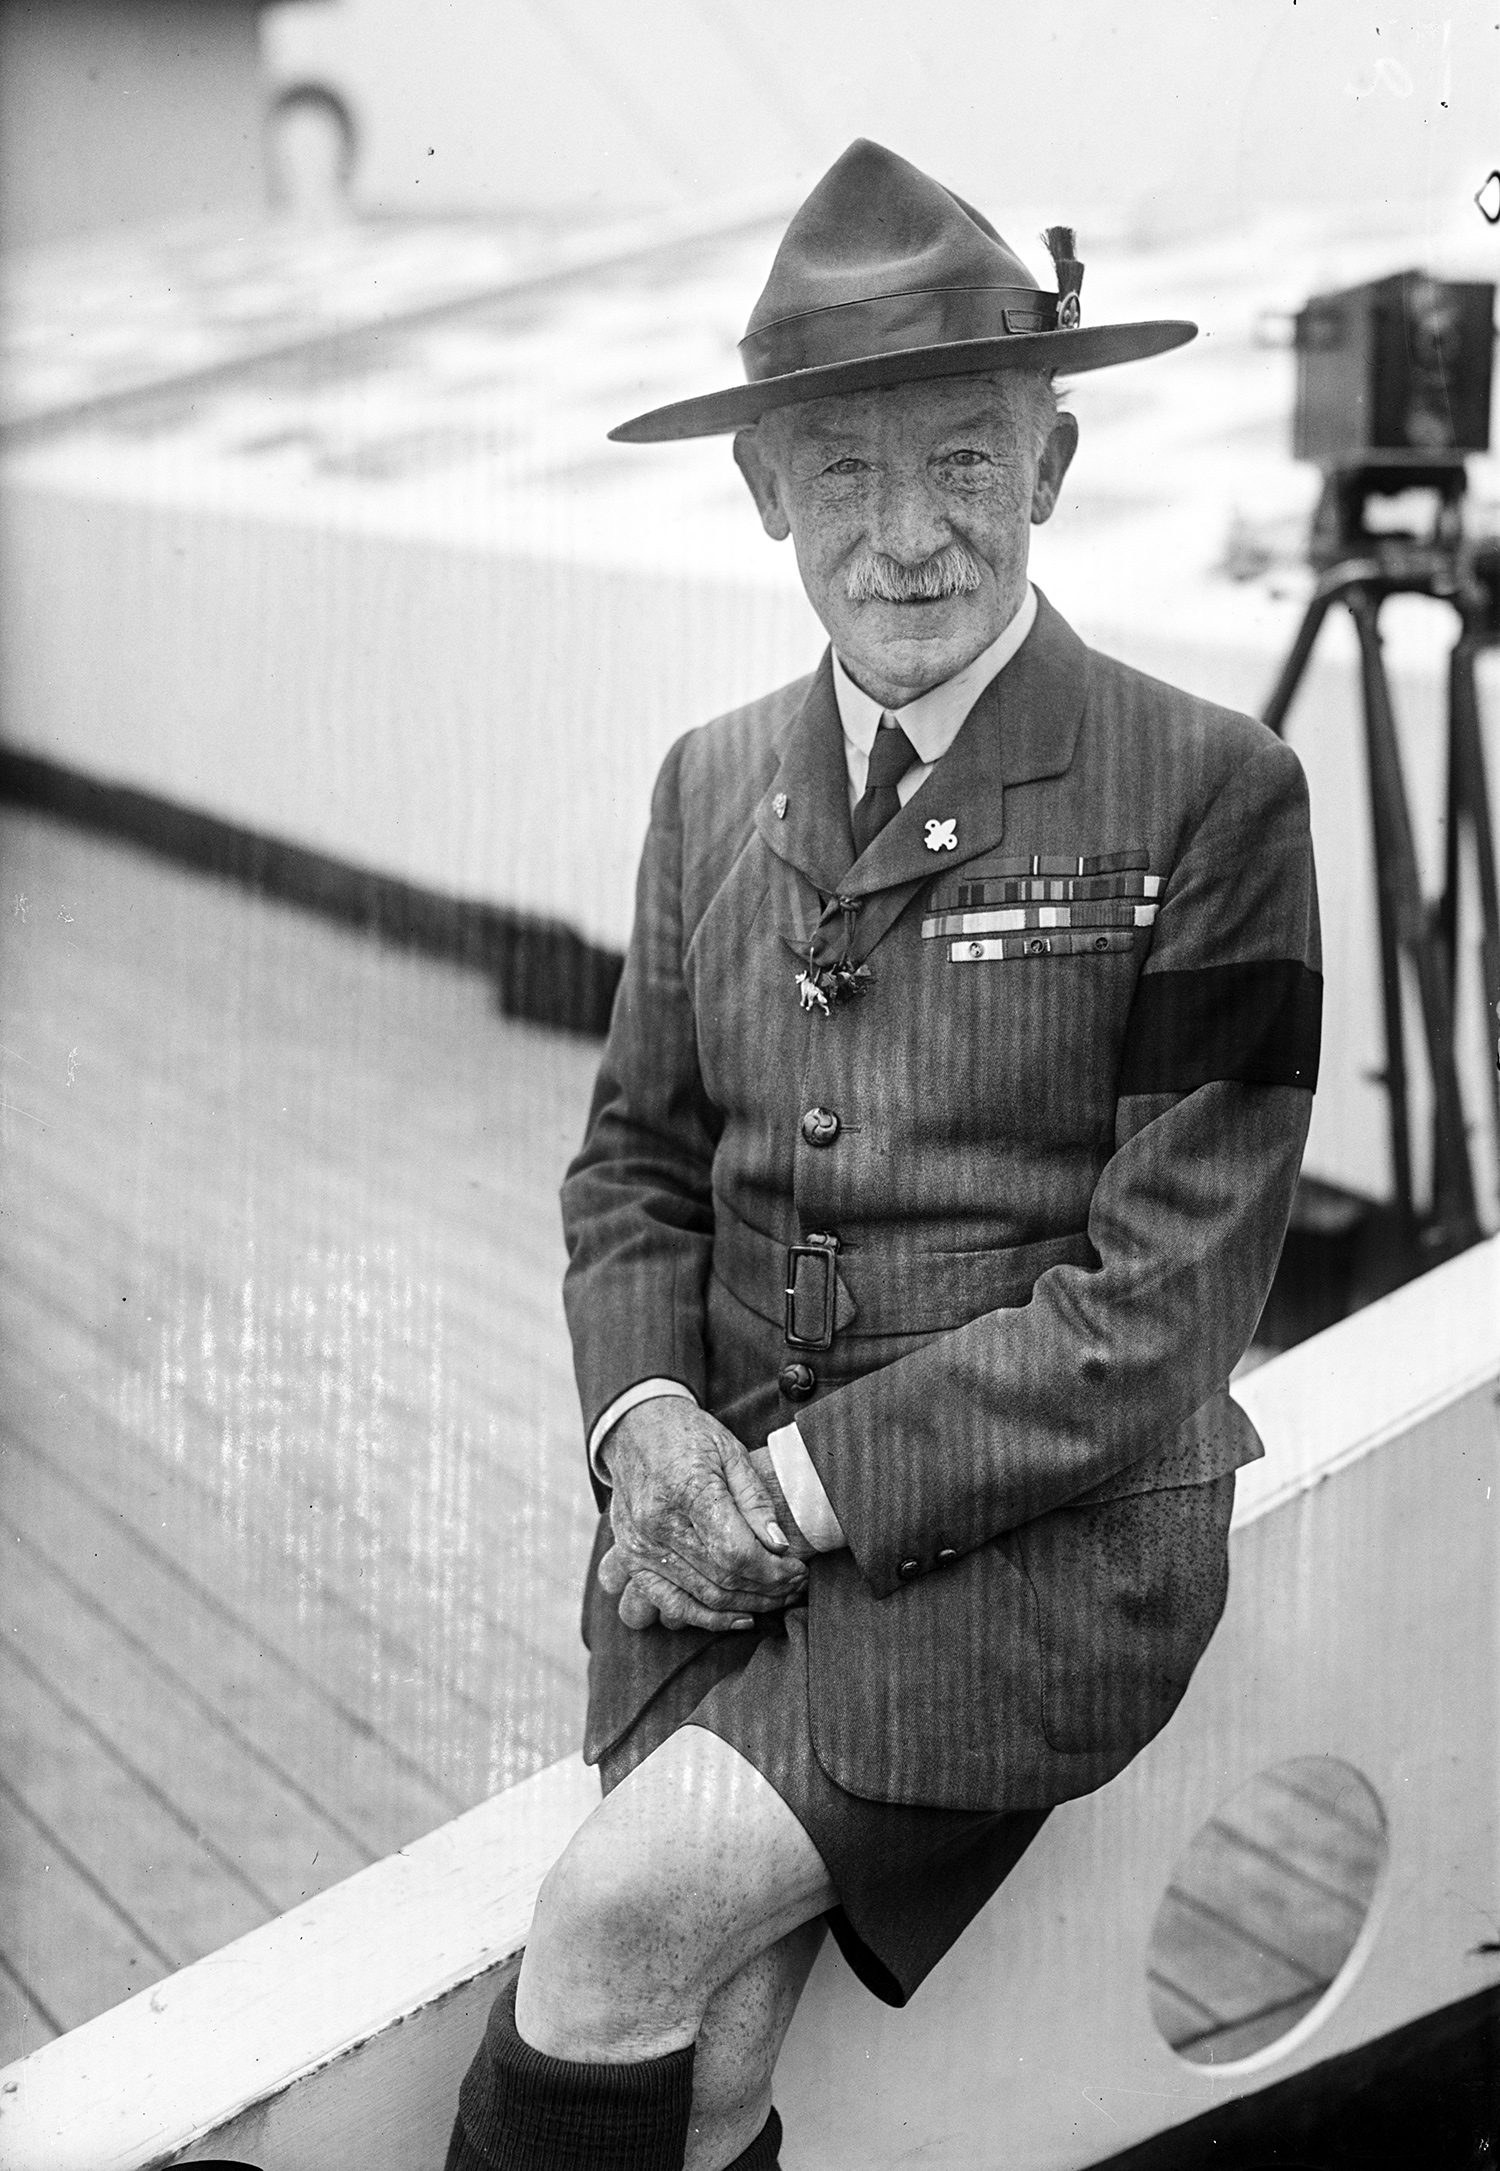 Robert Baden-Powell, smiling, in uniform and wearing military decorations on his chest and a wide-brimmed hat, photographed on the roof of a building.